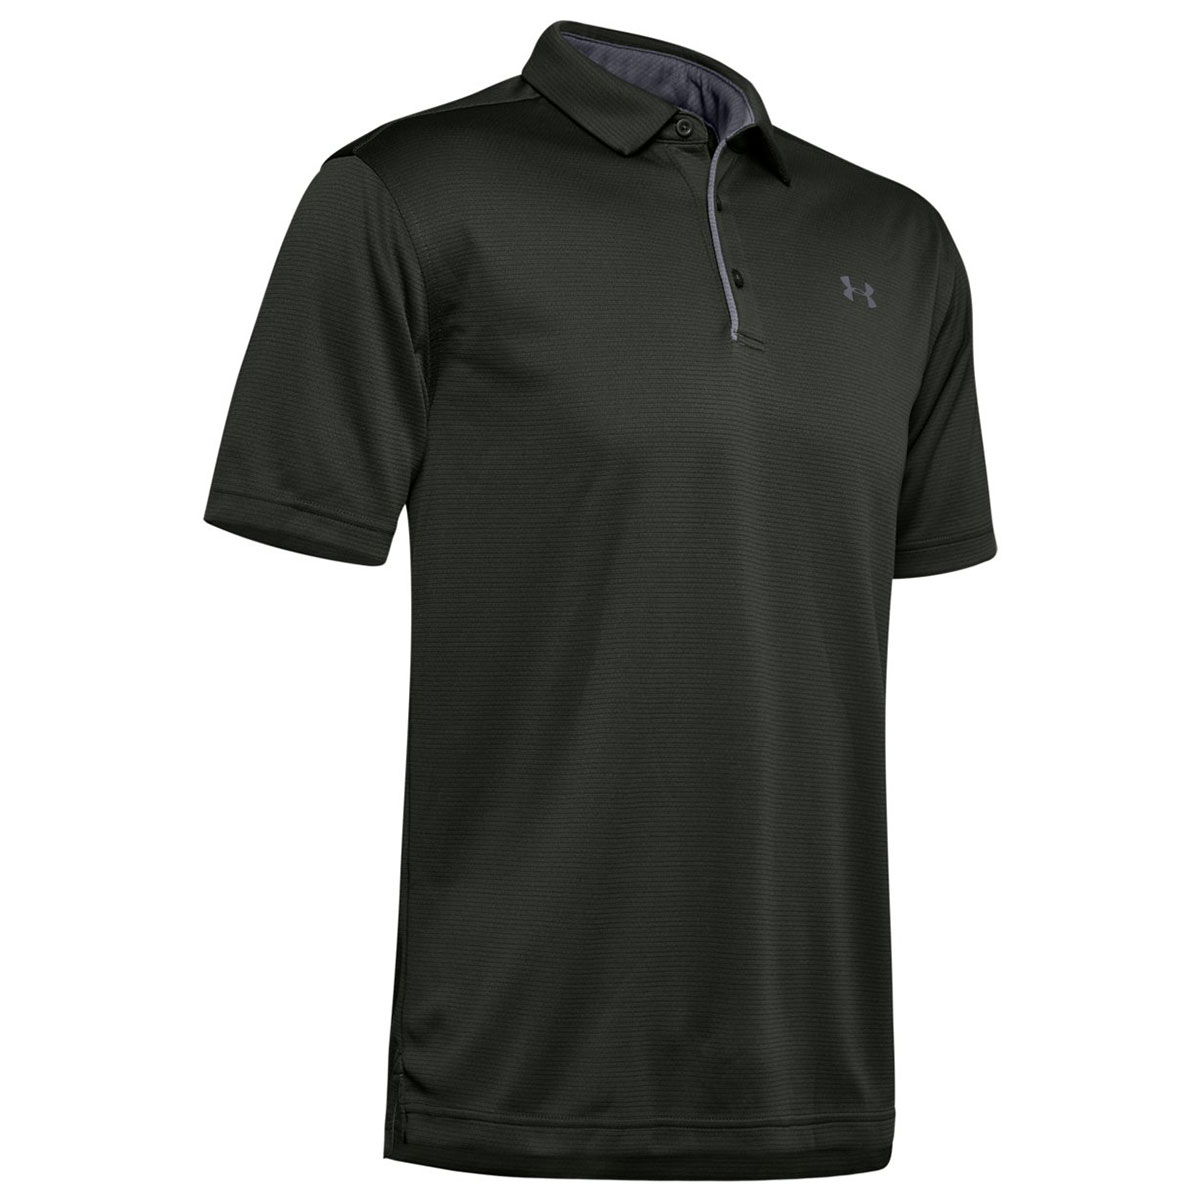 Under-Armour-Mens-2019-Golf-Tech-Wicking-Textured-Soft-Light-Polo-Shirt thumbnail 10